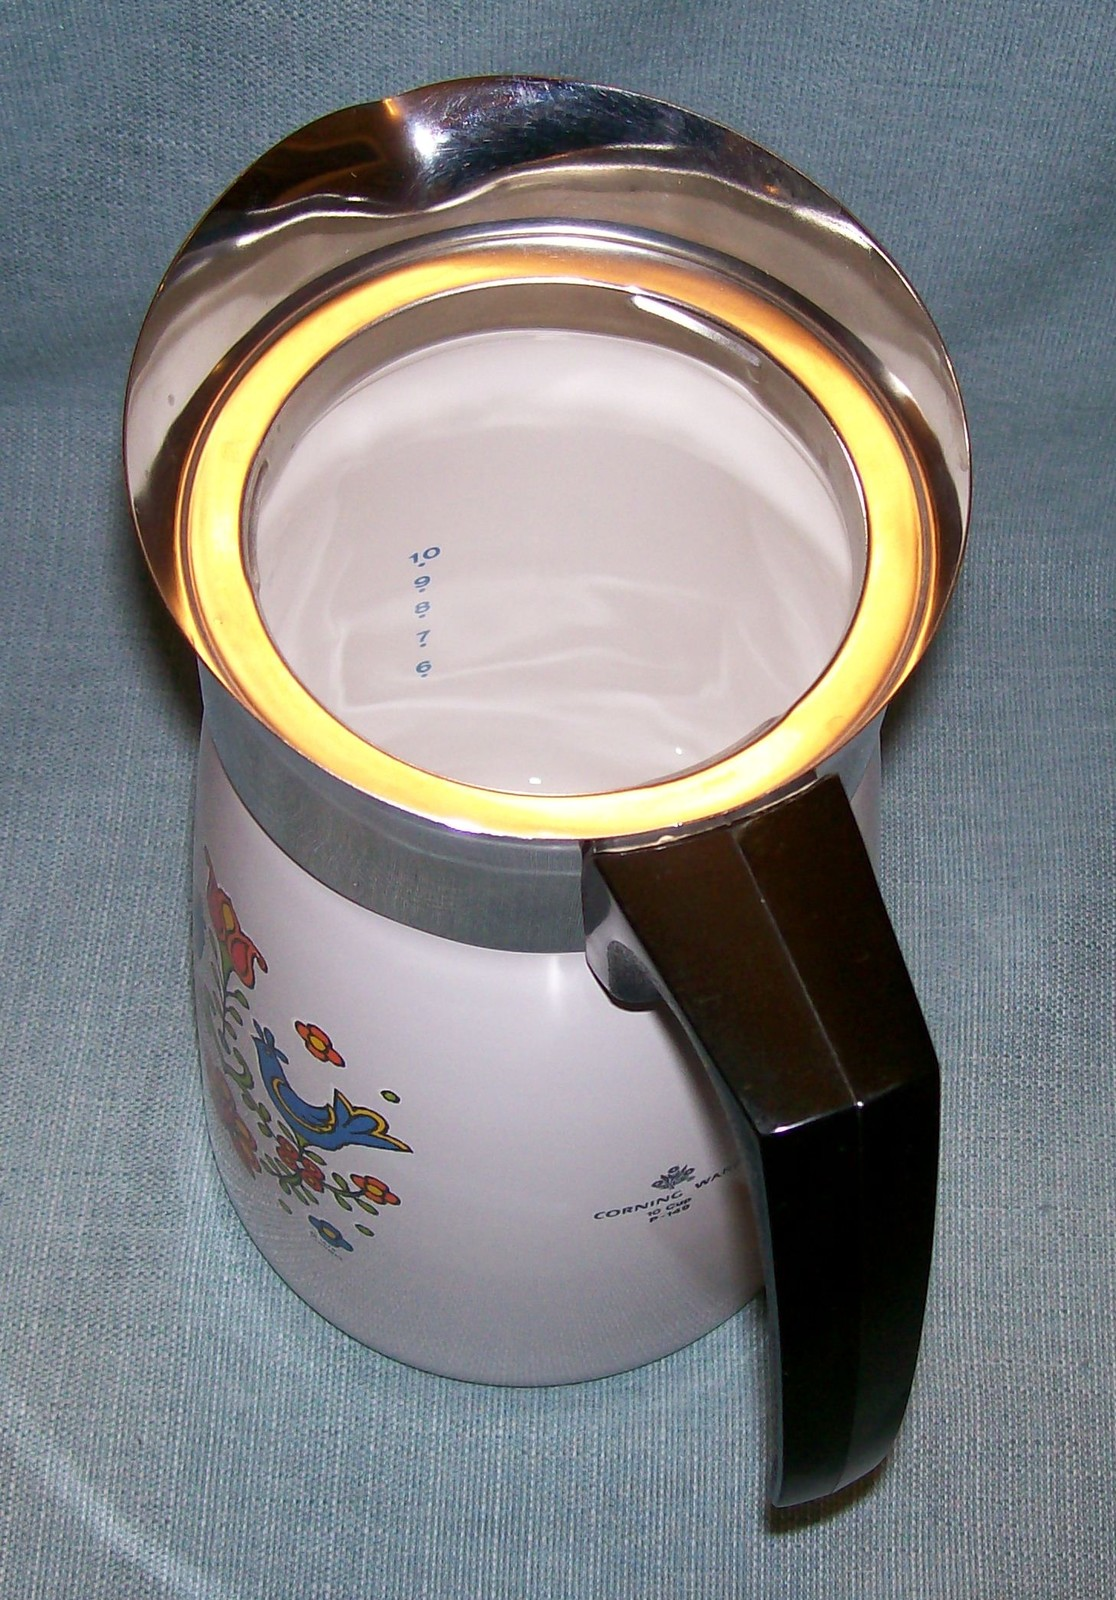 Vtg Corning COUNTRY FESTIVAL Friendship Stove Top 10 Cup Percolator P149 Birds image 5